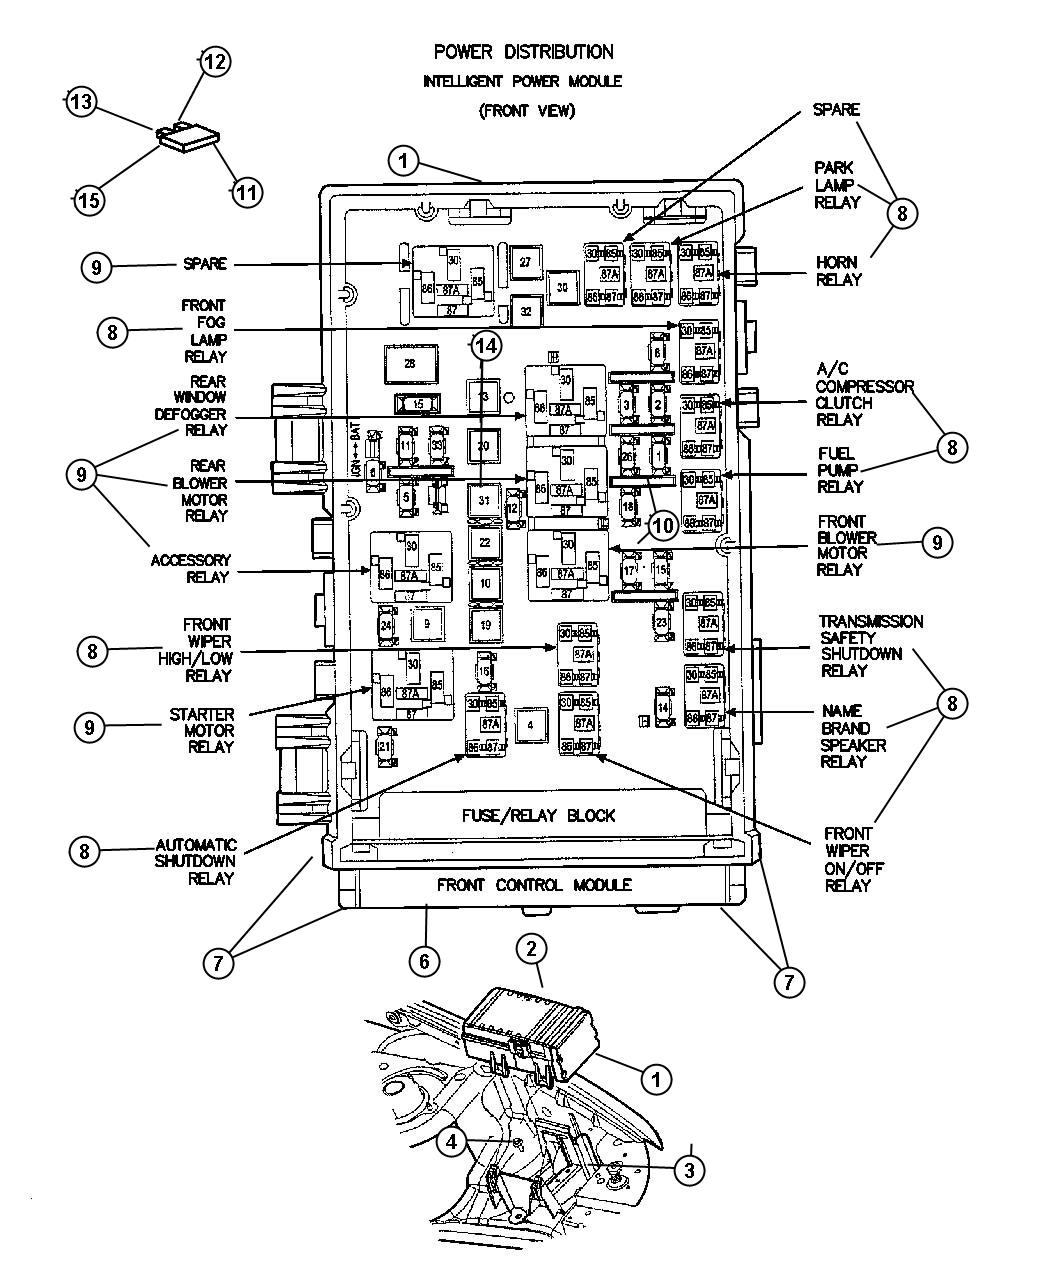 2001 Chrysler Fuse Box,Fuse.Free Download Printable Wiring Diagrams